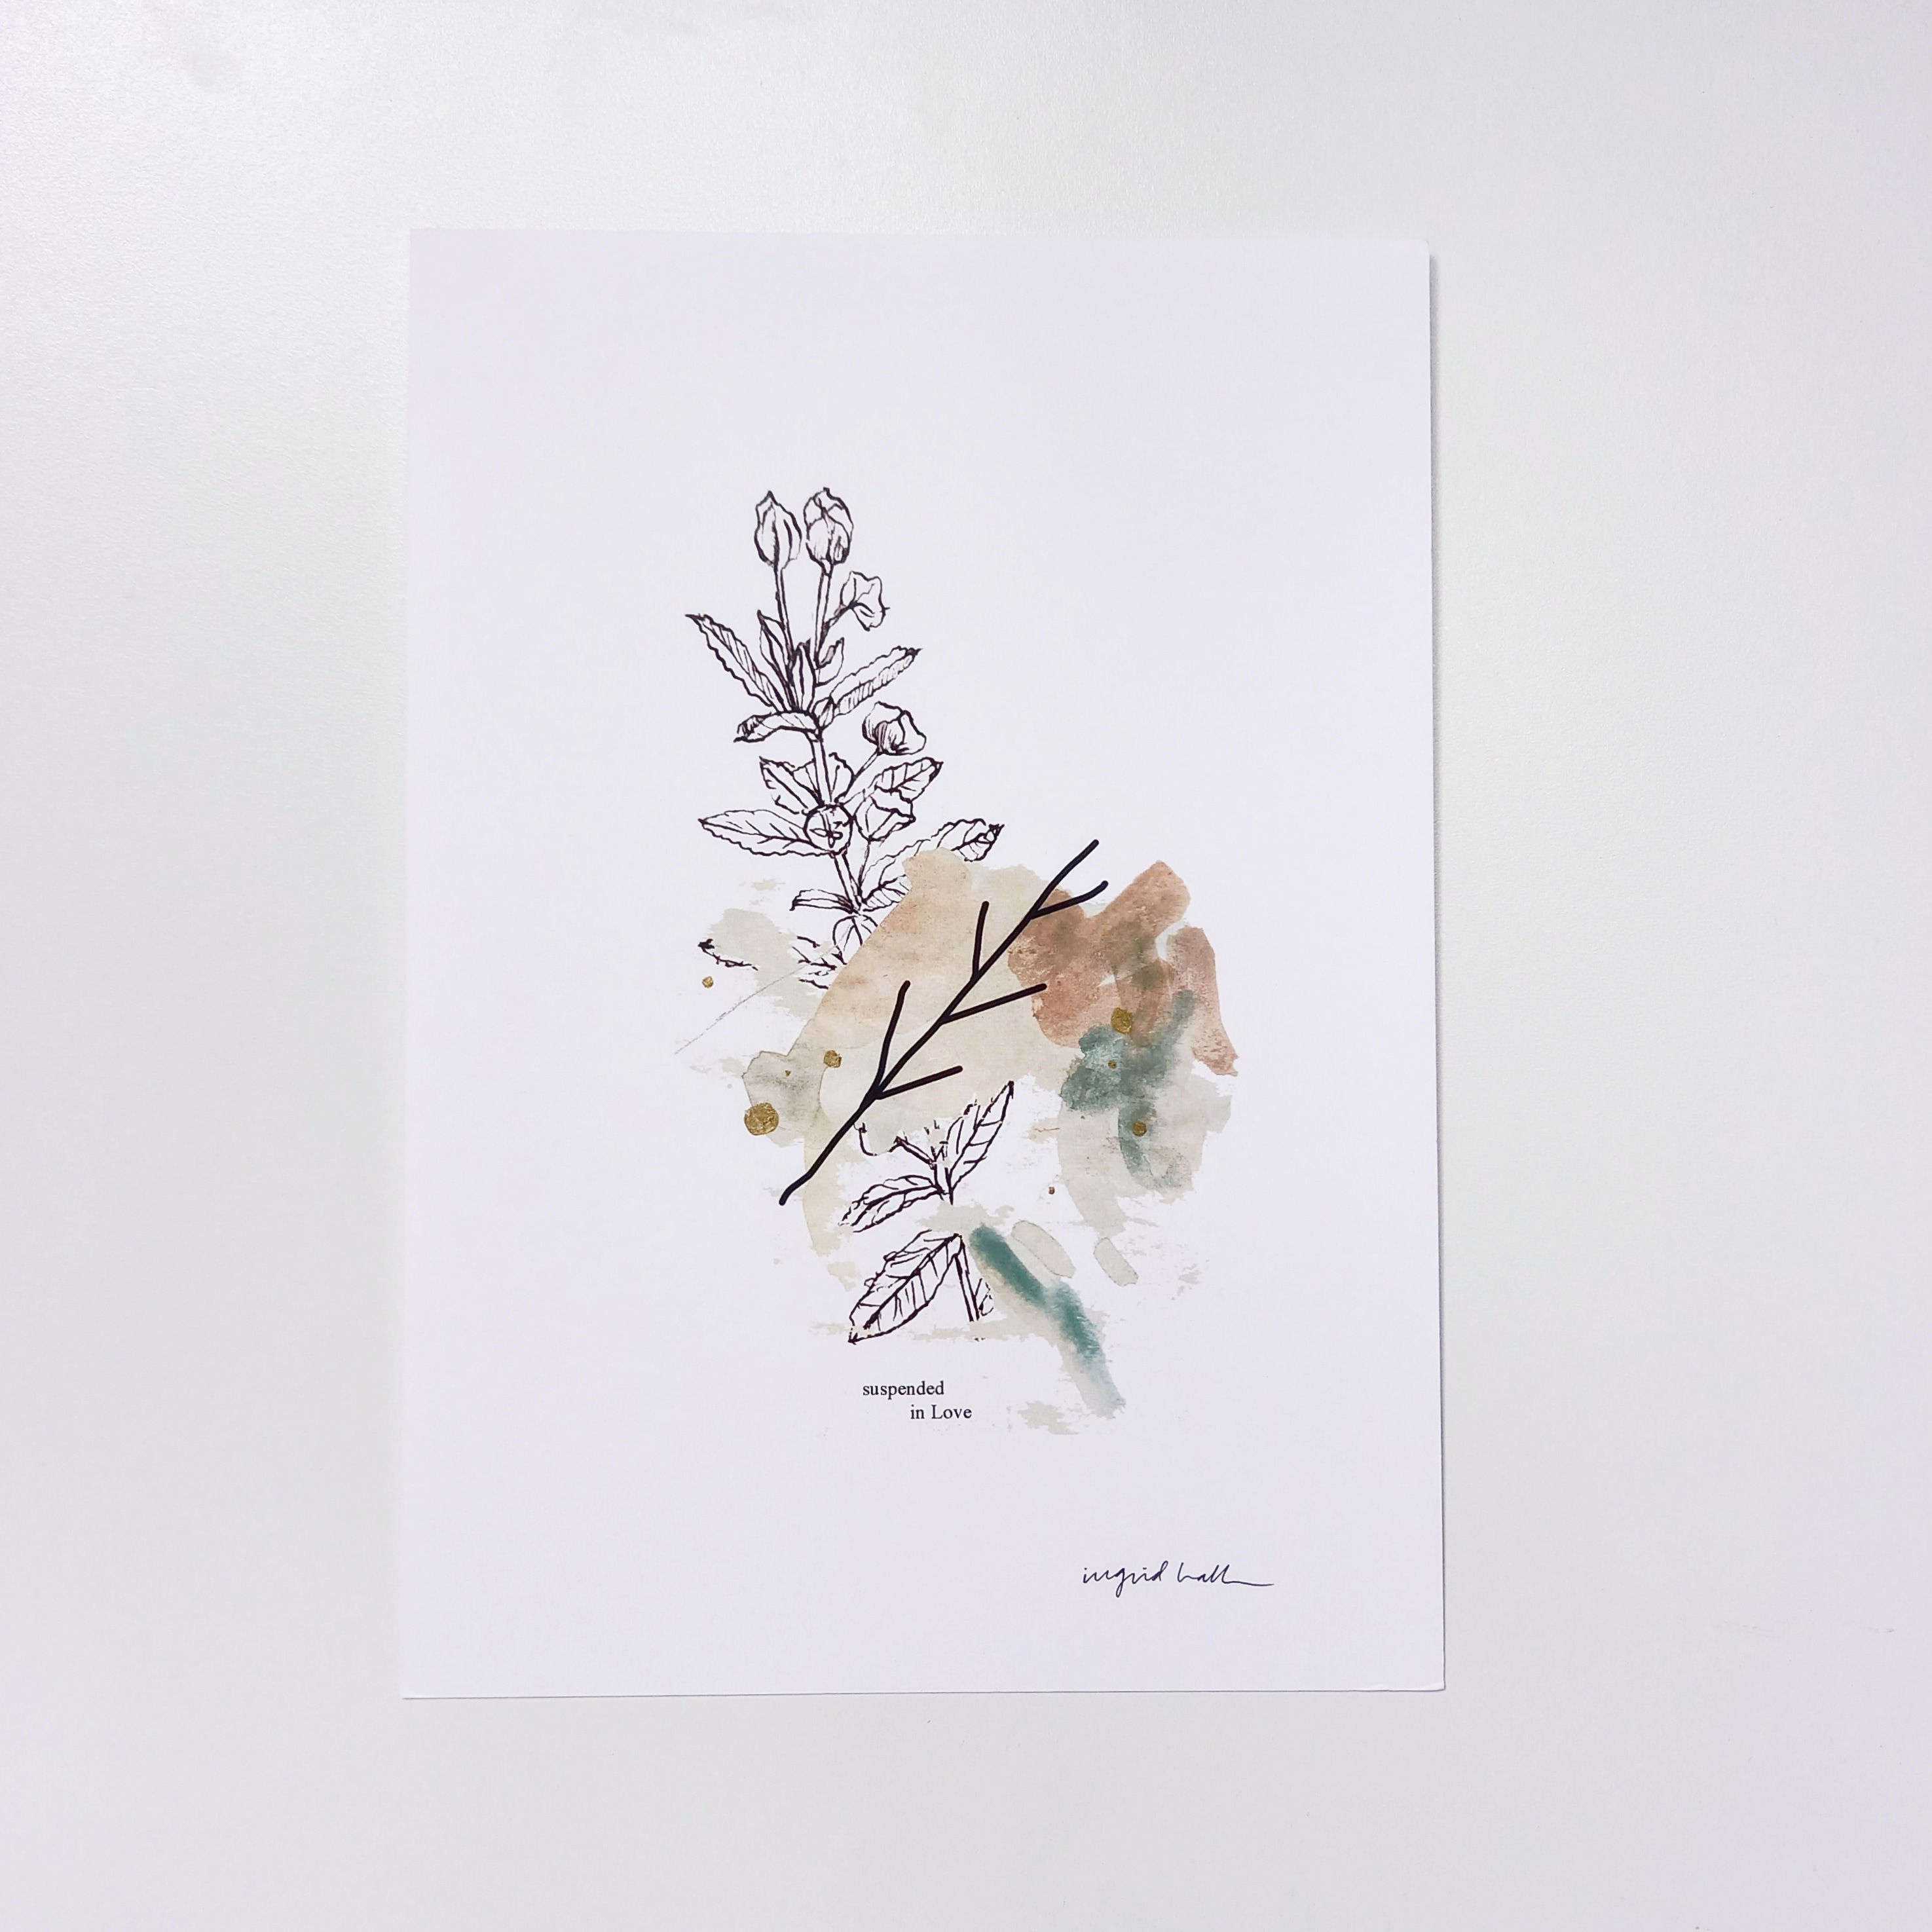 suspended-in-love--discounted-print